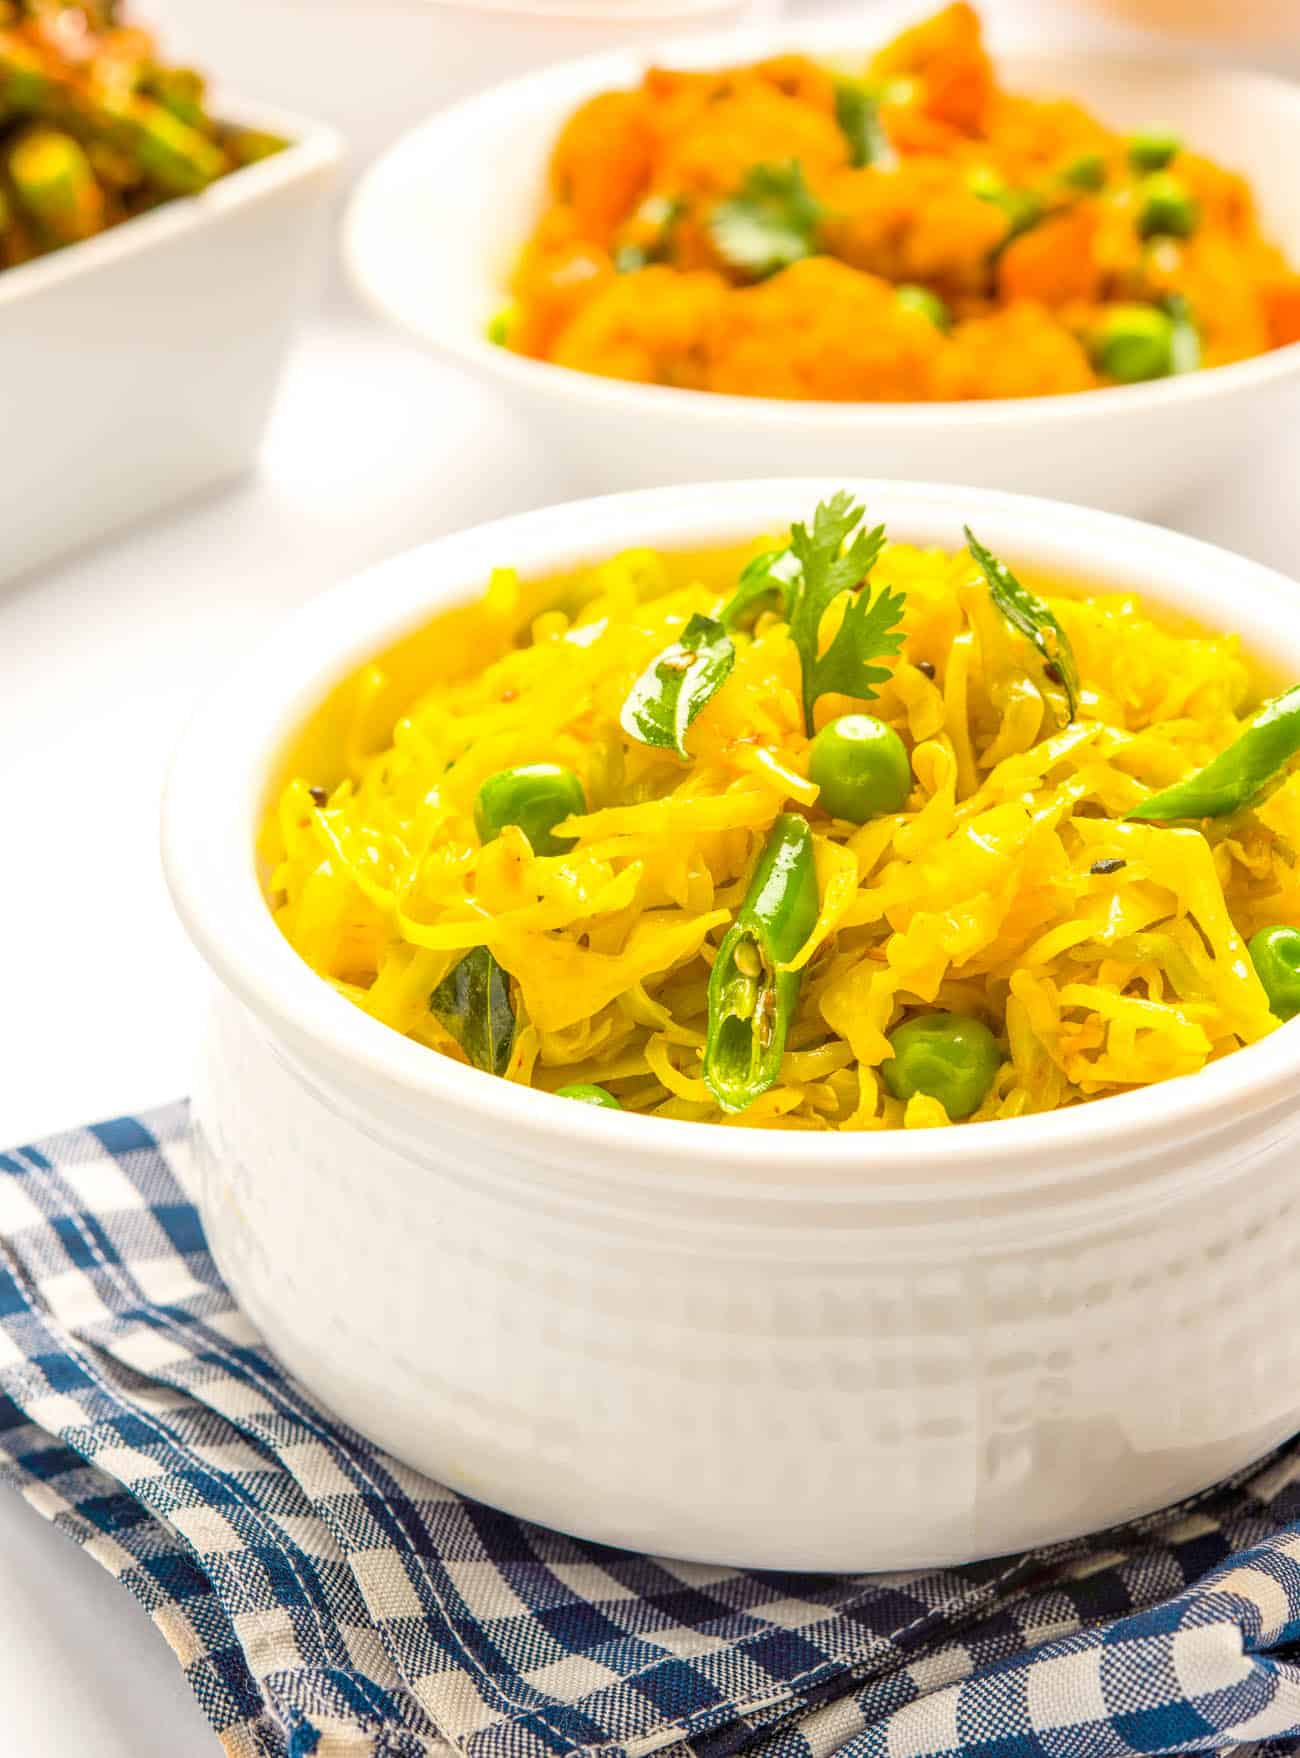 Indian Cabbage or cabbage sabzi served in a white bowl